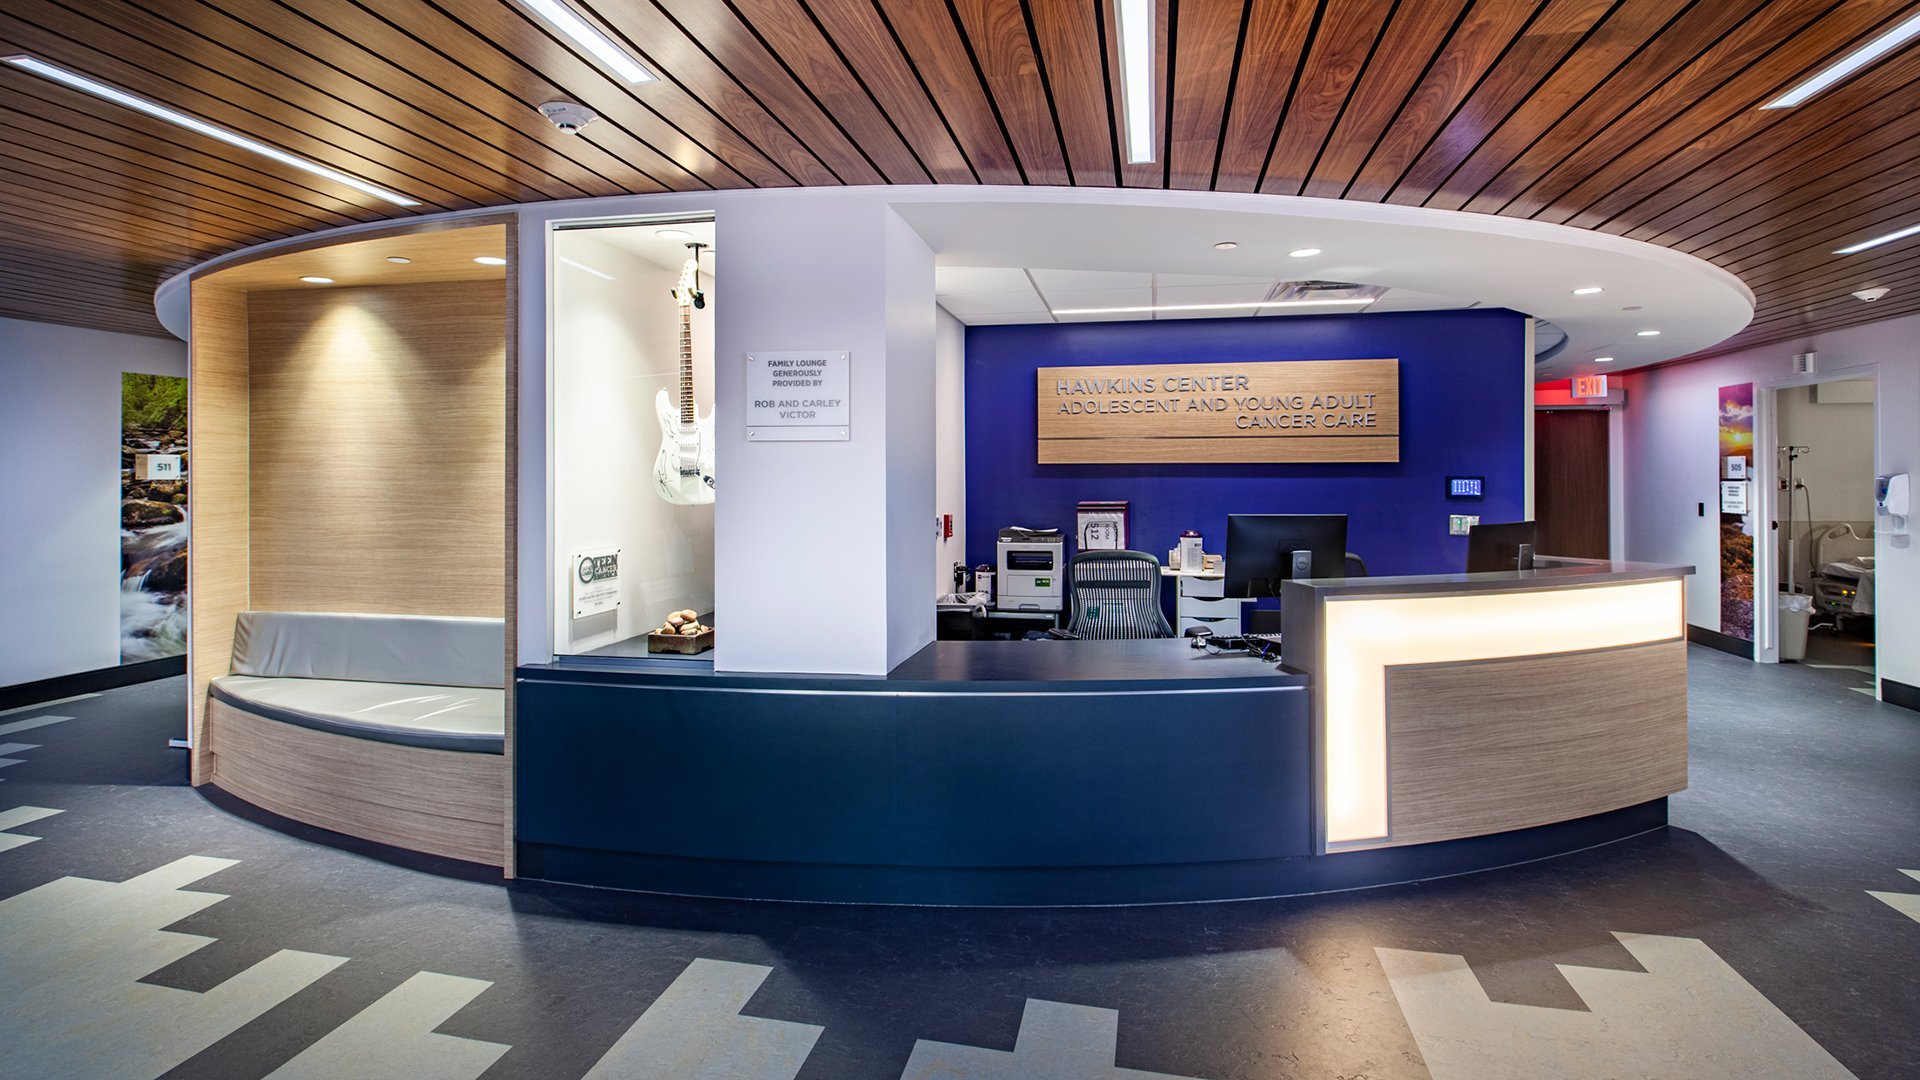 Bon Secours St. Francis, Hawkins Center, Adolescent & Young Adult Cancer Care